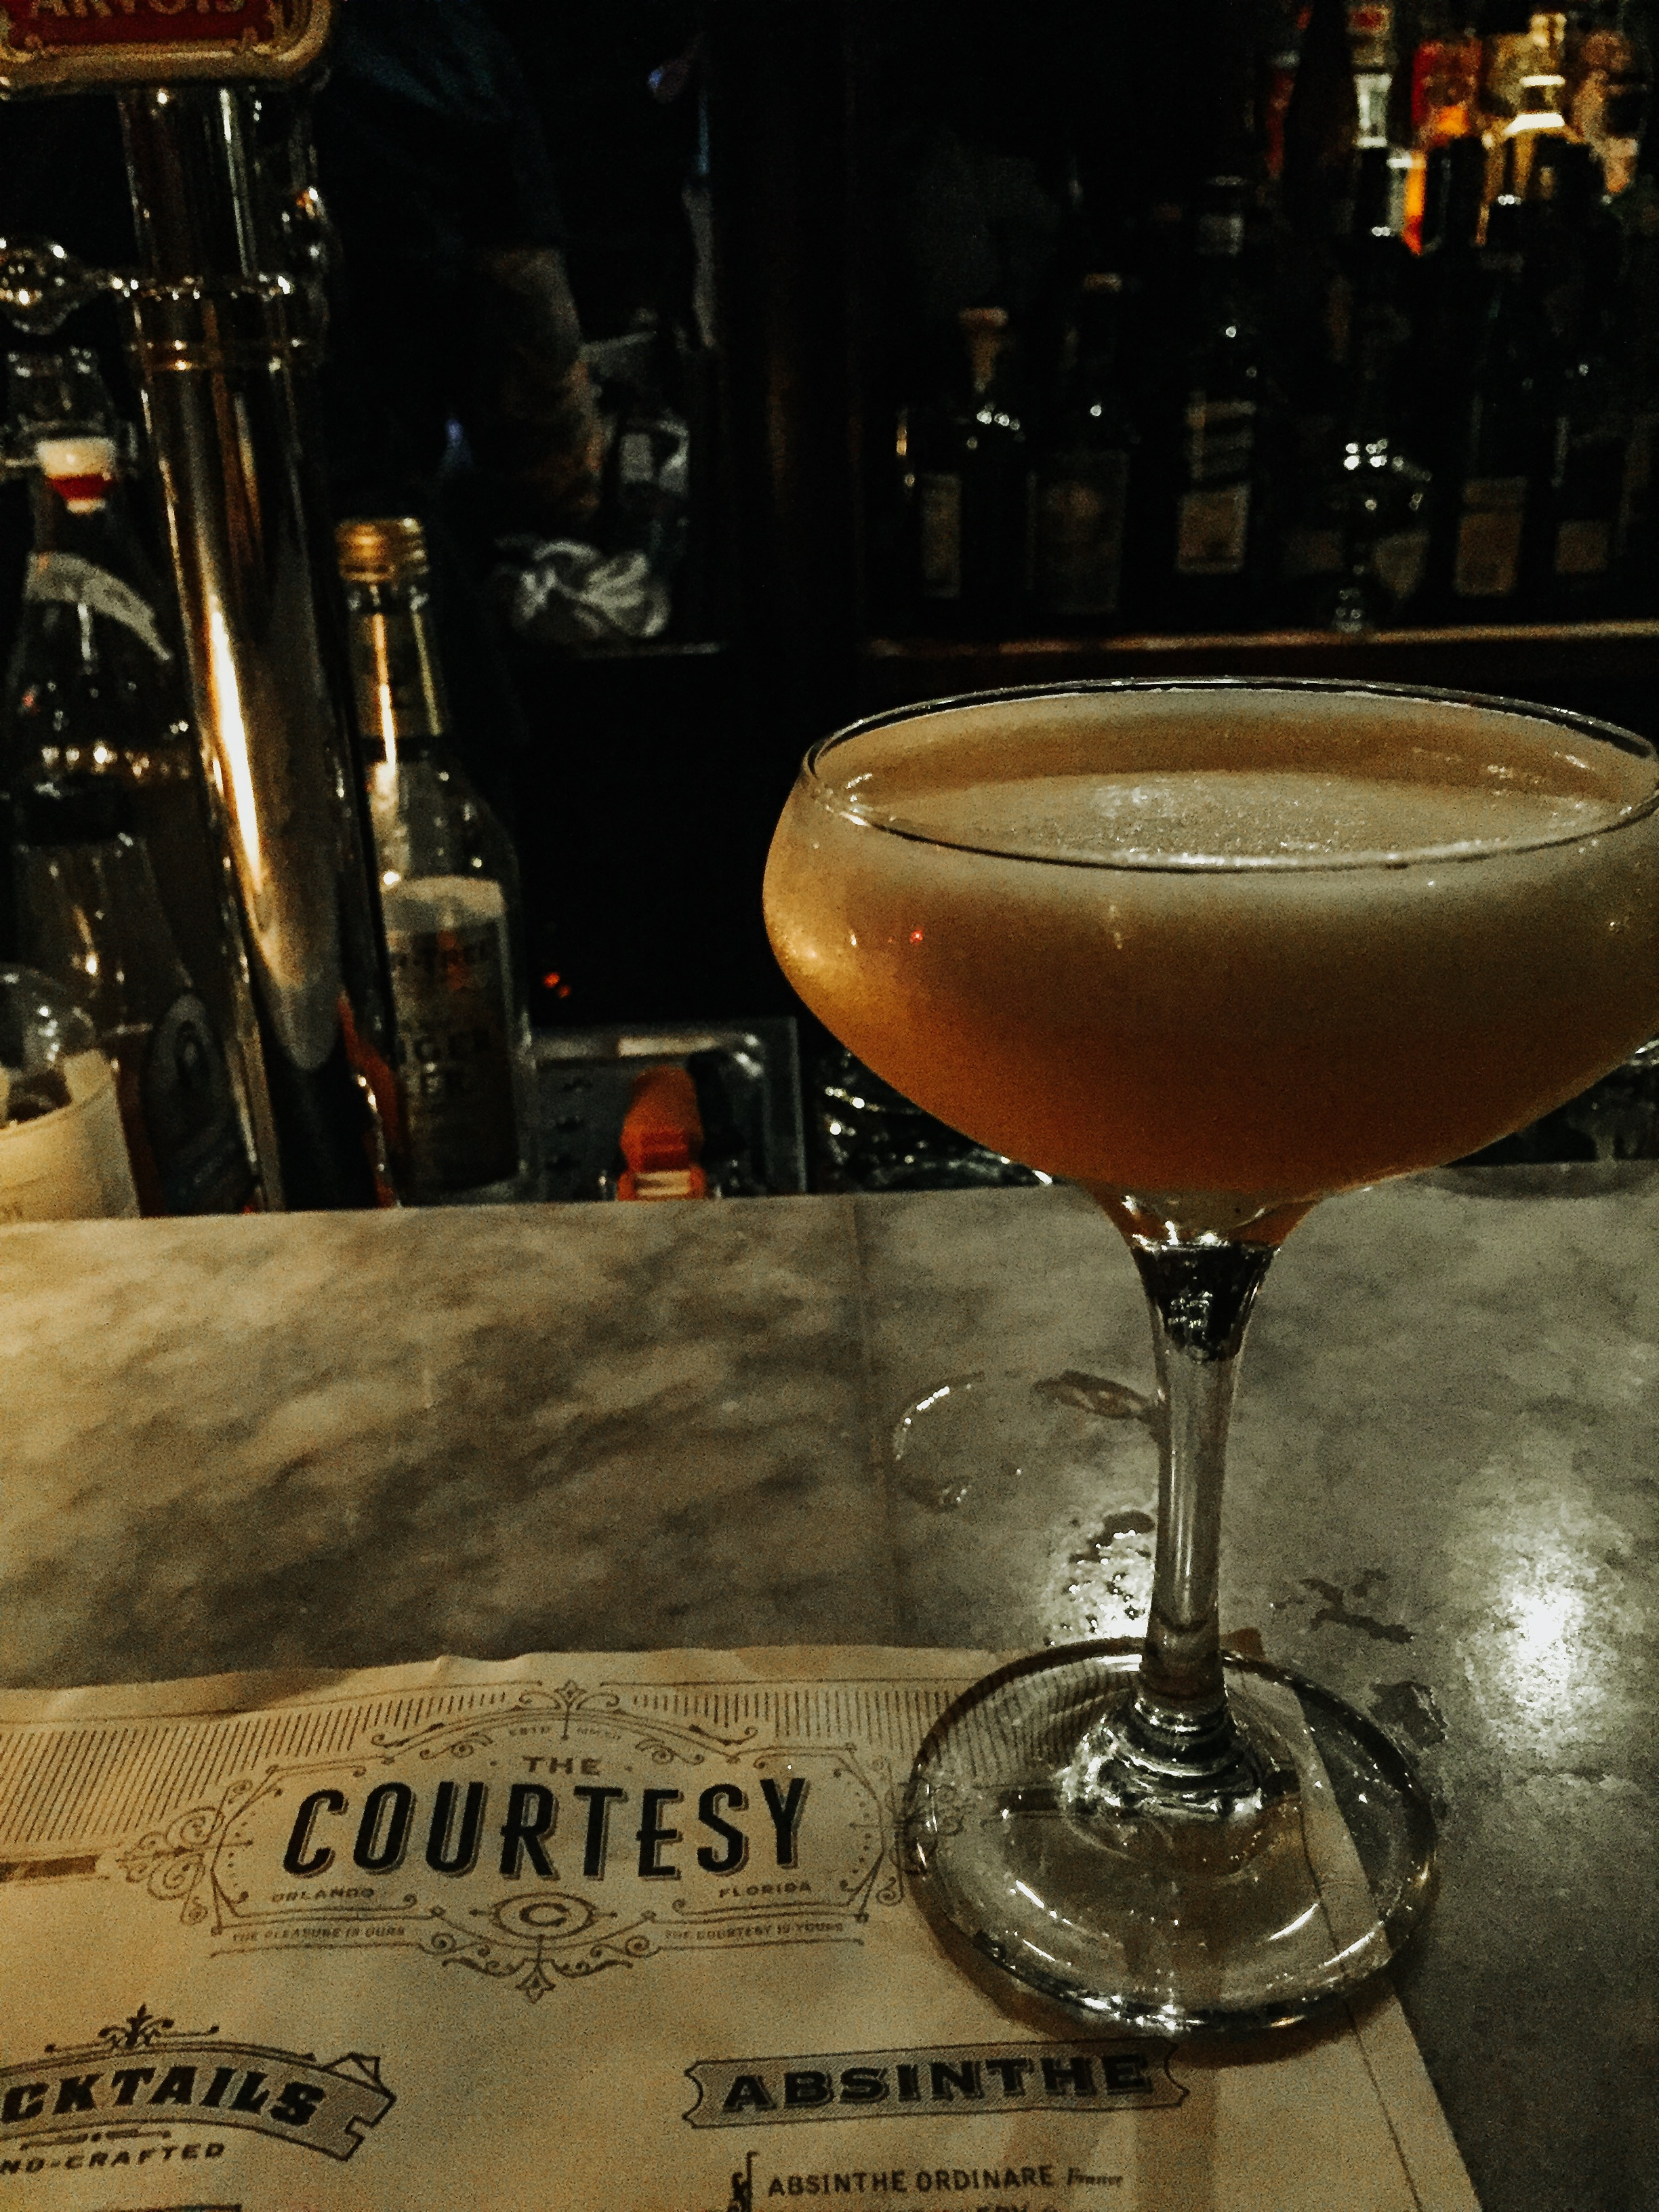 The Courtesy- Downtown Orlando